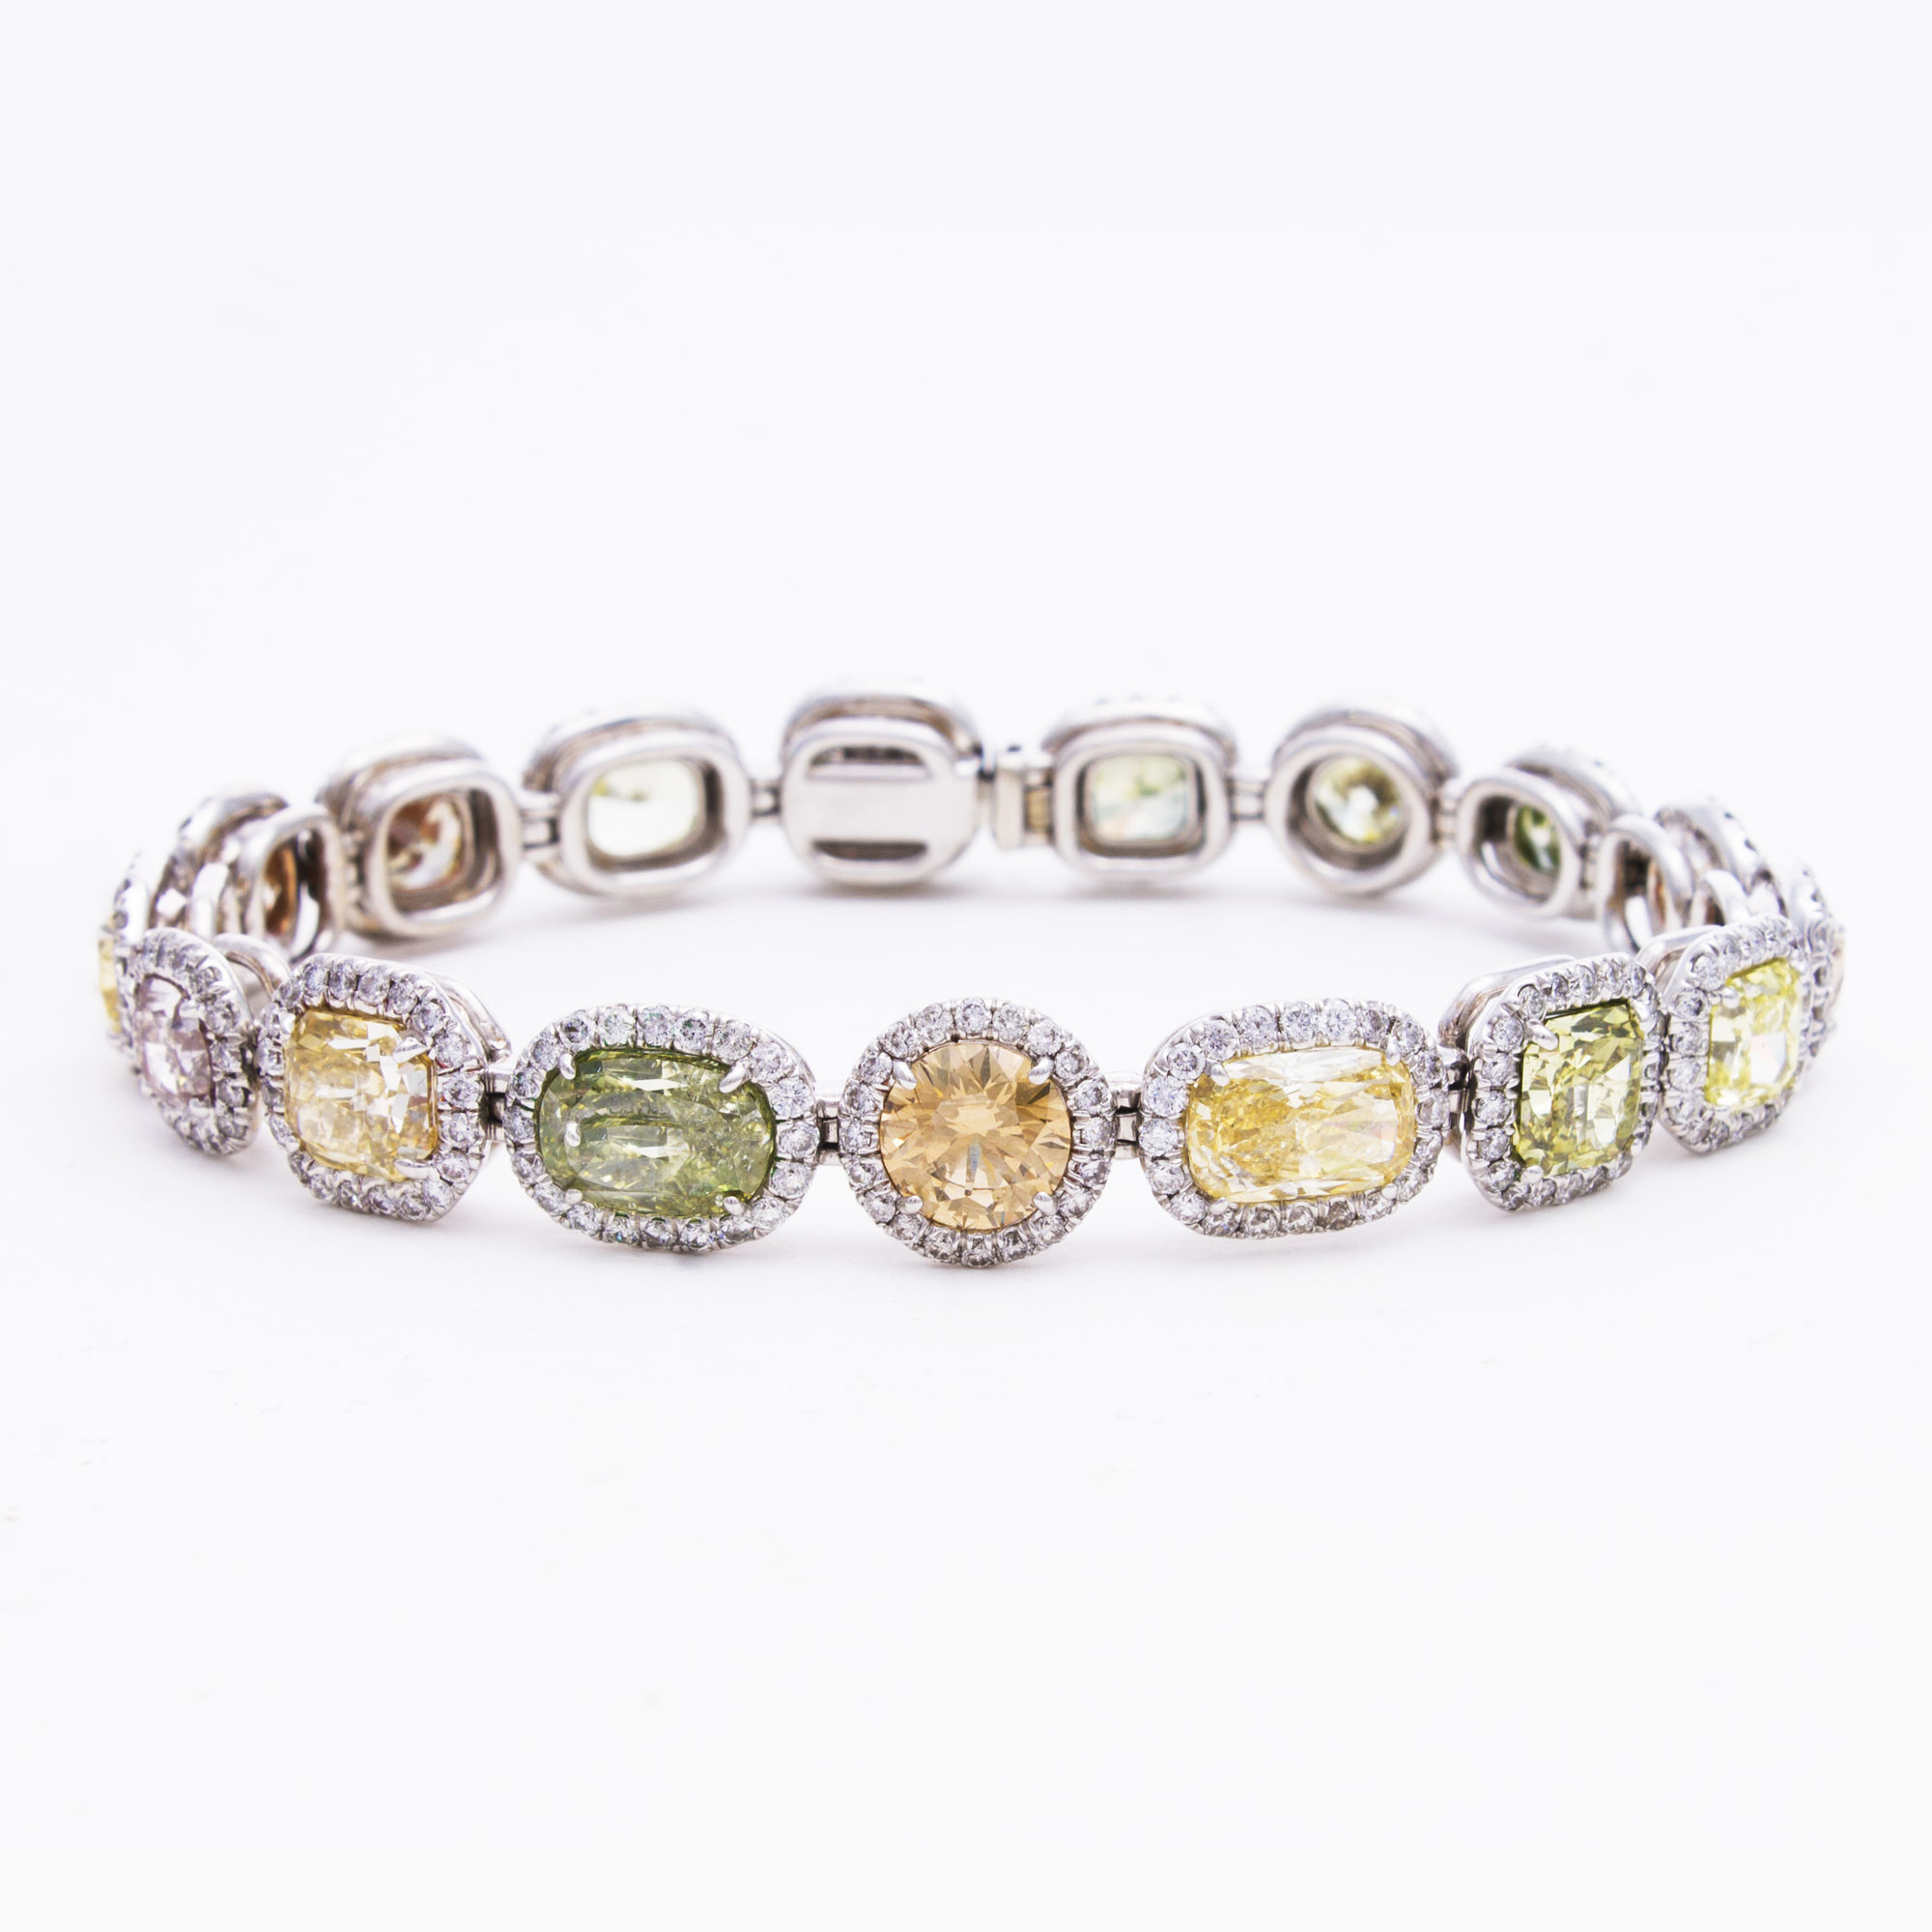 Platinum-Colored-Diamond-Bracelet